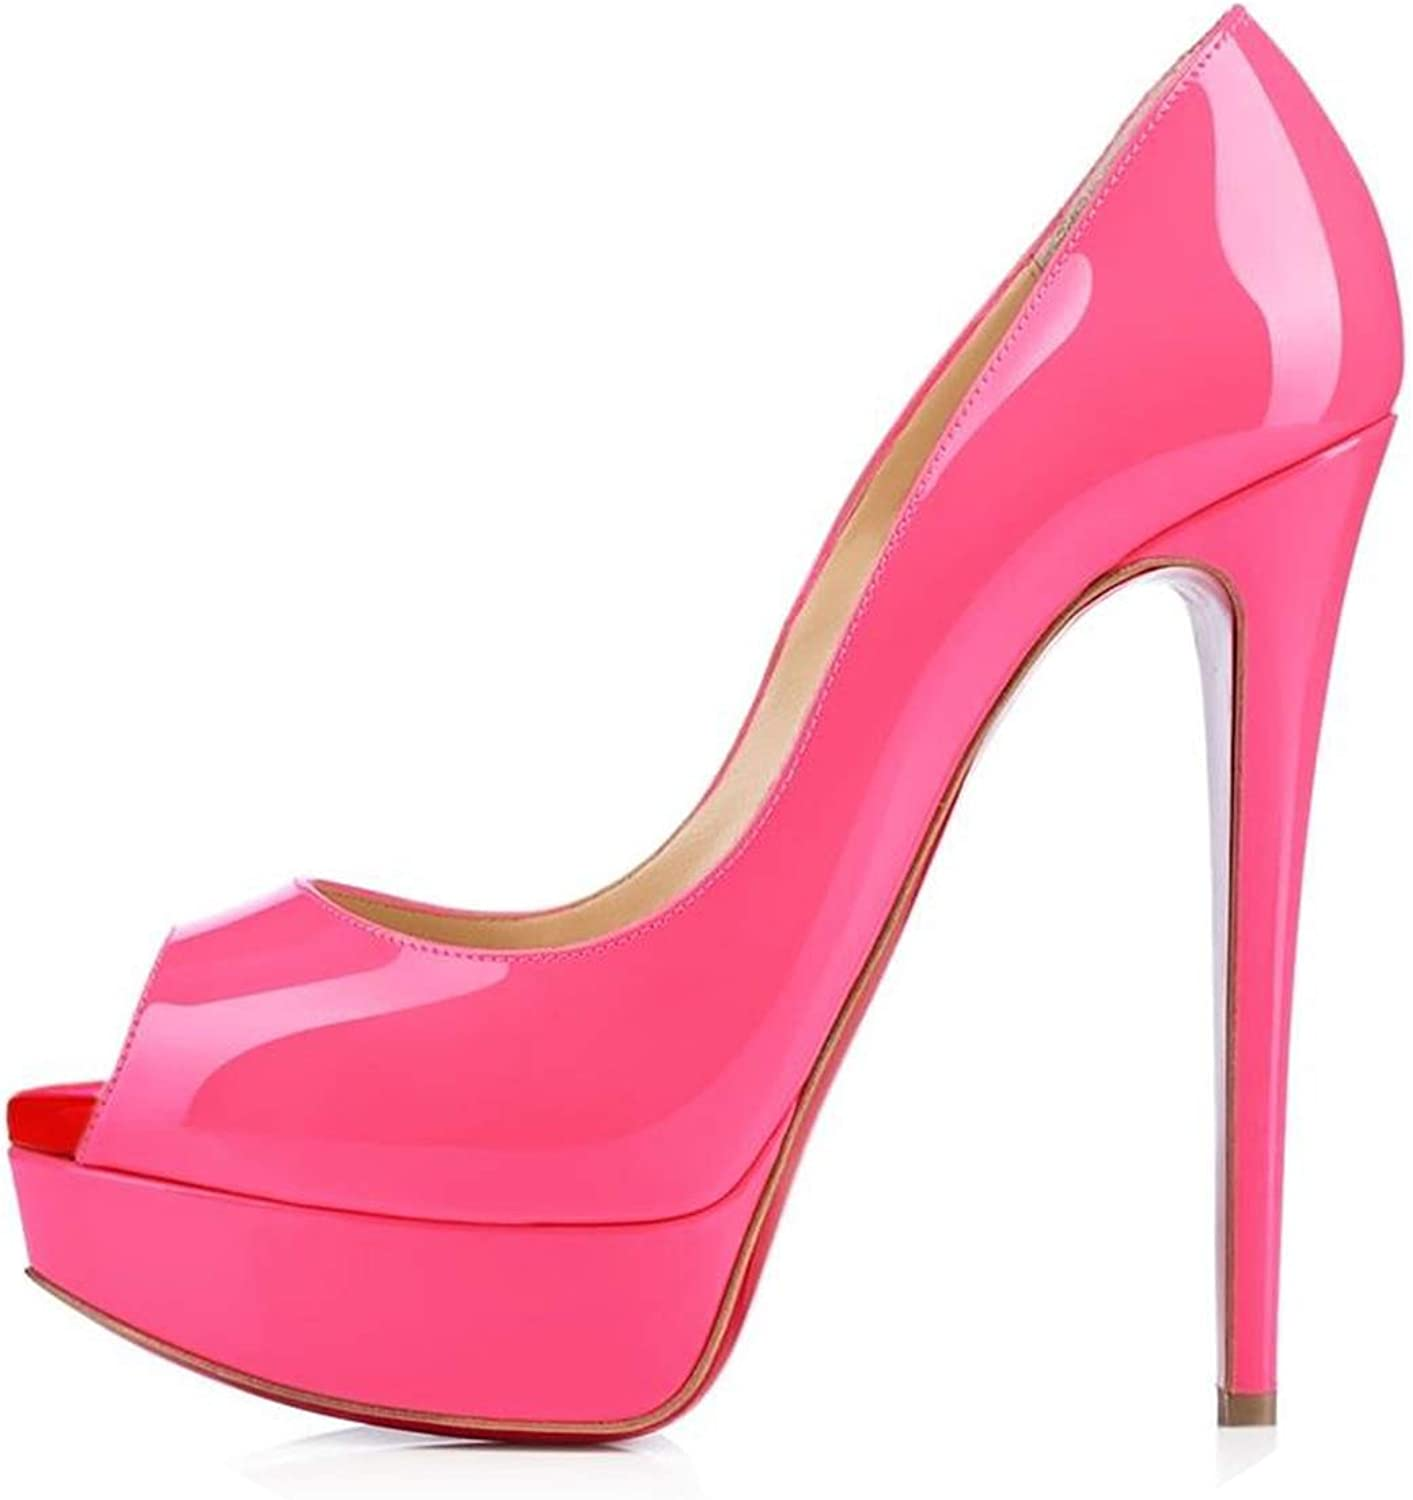 LAIGEDANZI Womens Pumps Leather Wedges Platform Stiletto High Heels Open Toe Sexy Party shoes,pink,8